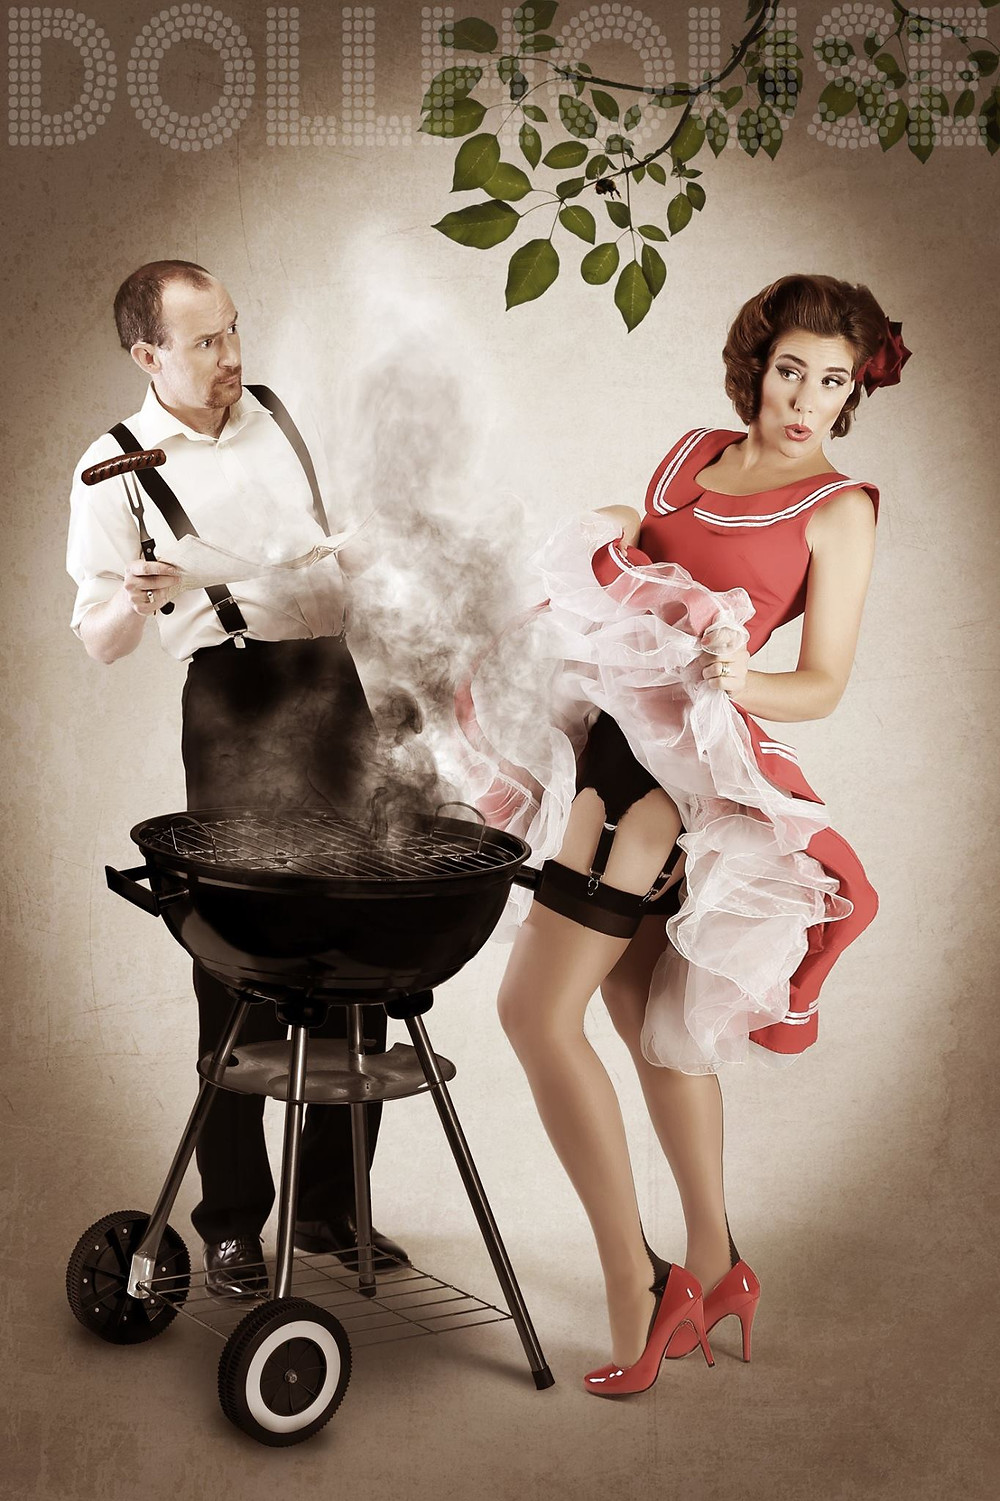 Couple Pinup Photo Shoots by DollHouse Photography Elvgren Themed